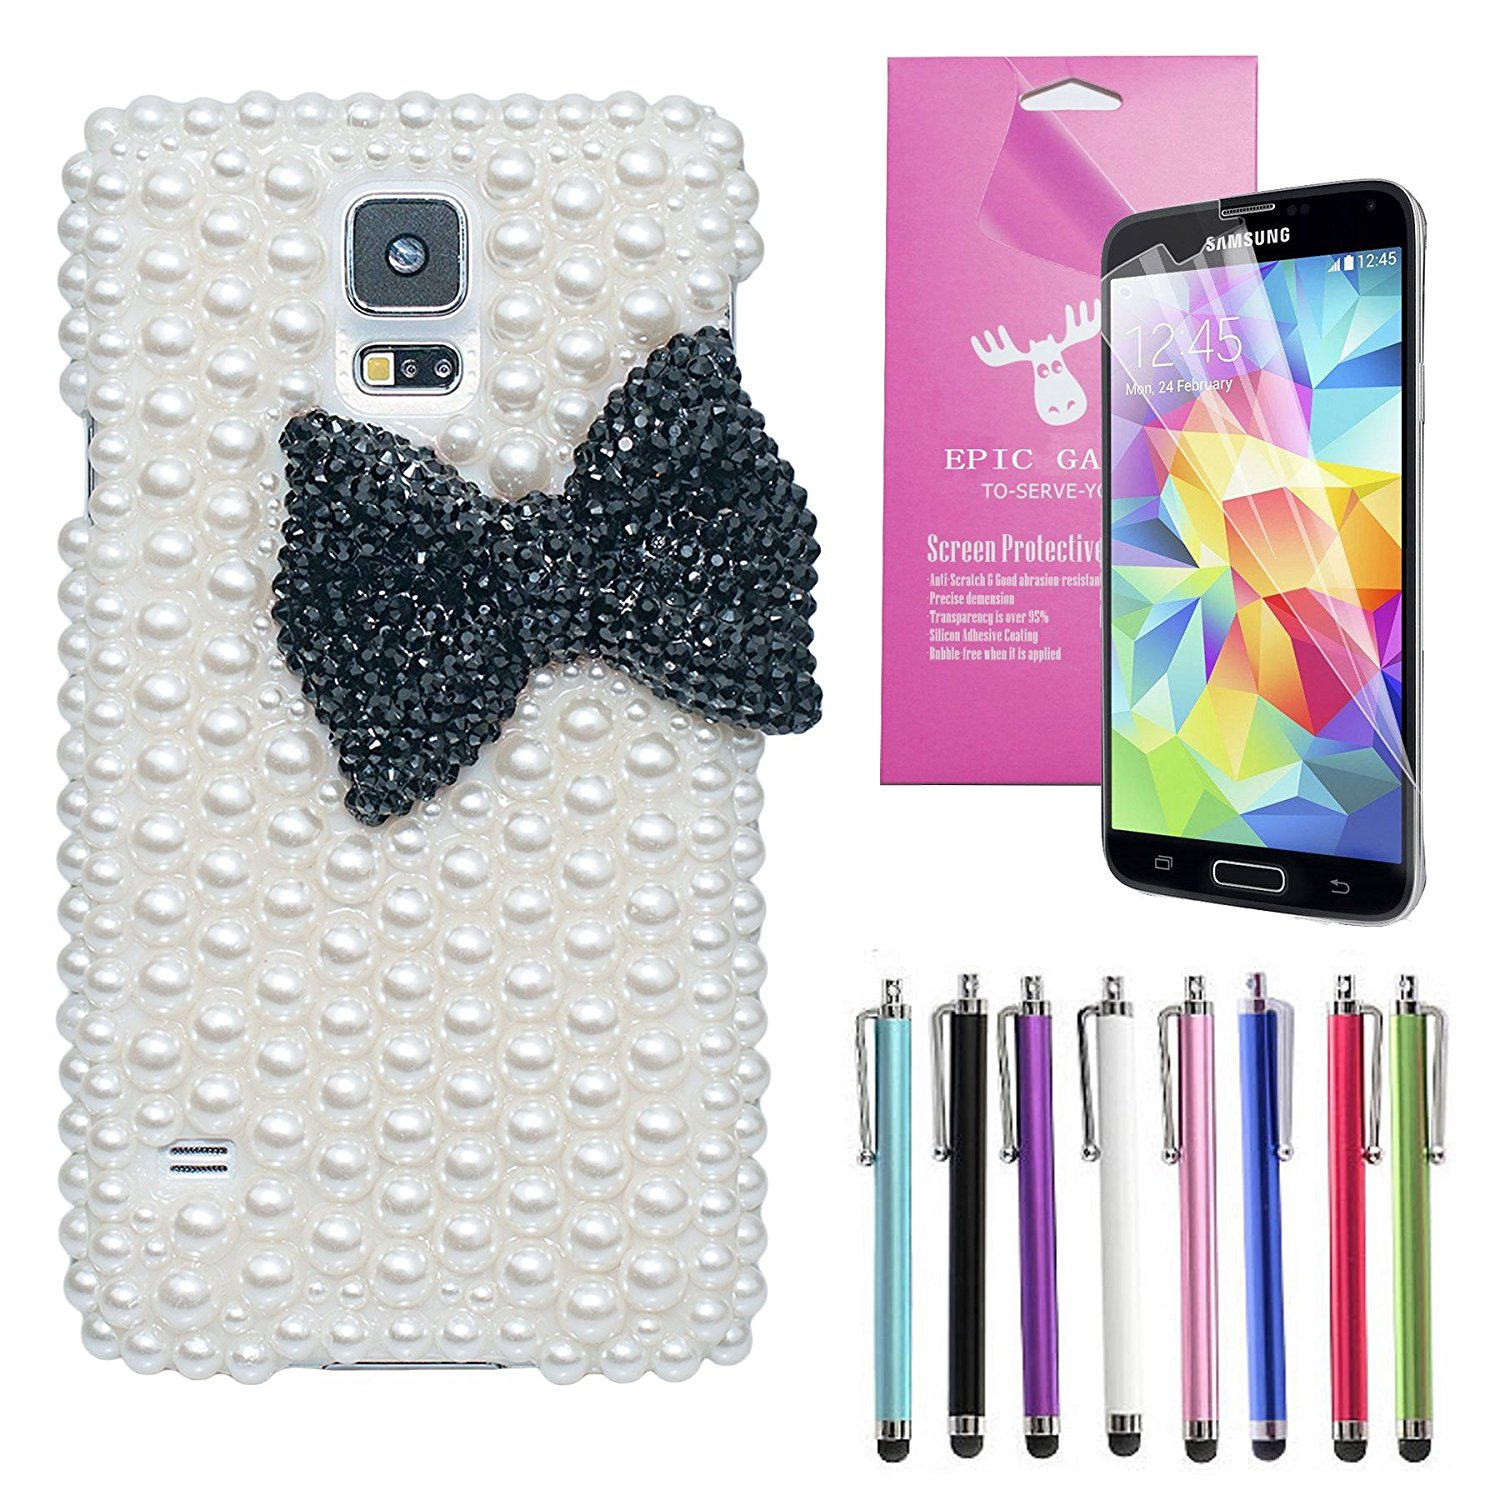 EpicGadget(TM) Luxury Handmade 3D Bling White Pearl Black Ribbon Bow Knot Case Cover For Samsung Galaxy S5 i9600 + Screen Protector + 1 Stylus (Random Color) (US Seller!!) (Black Pearl Bow Knot Case)